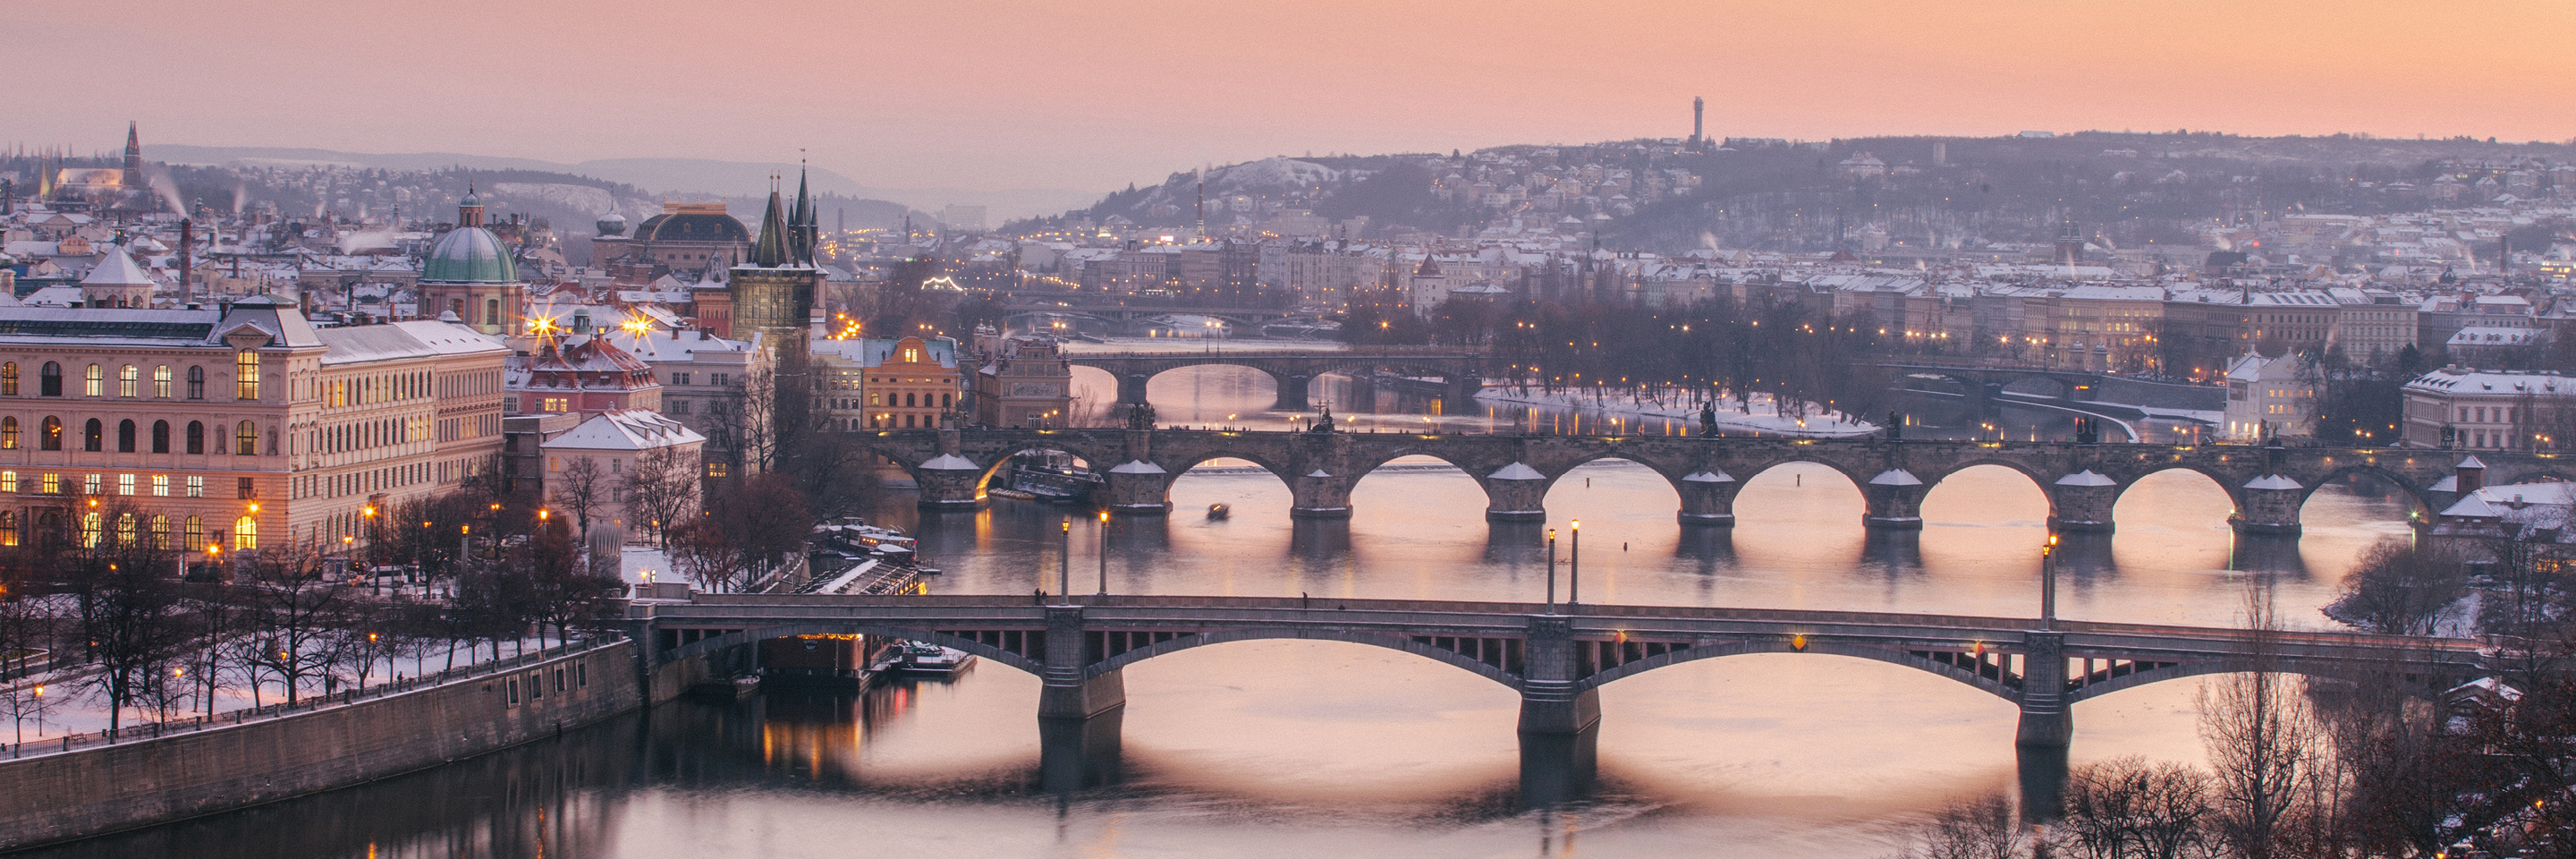 Festive Season in The Heart of Germany with 2 Nights in Prague